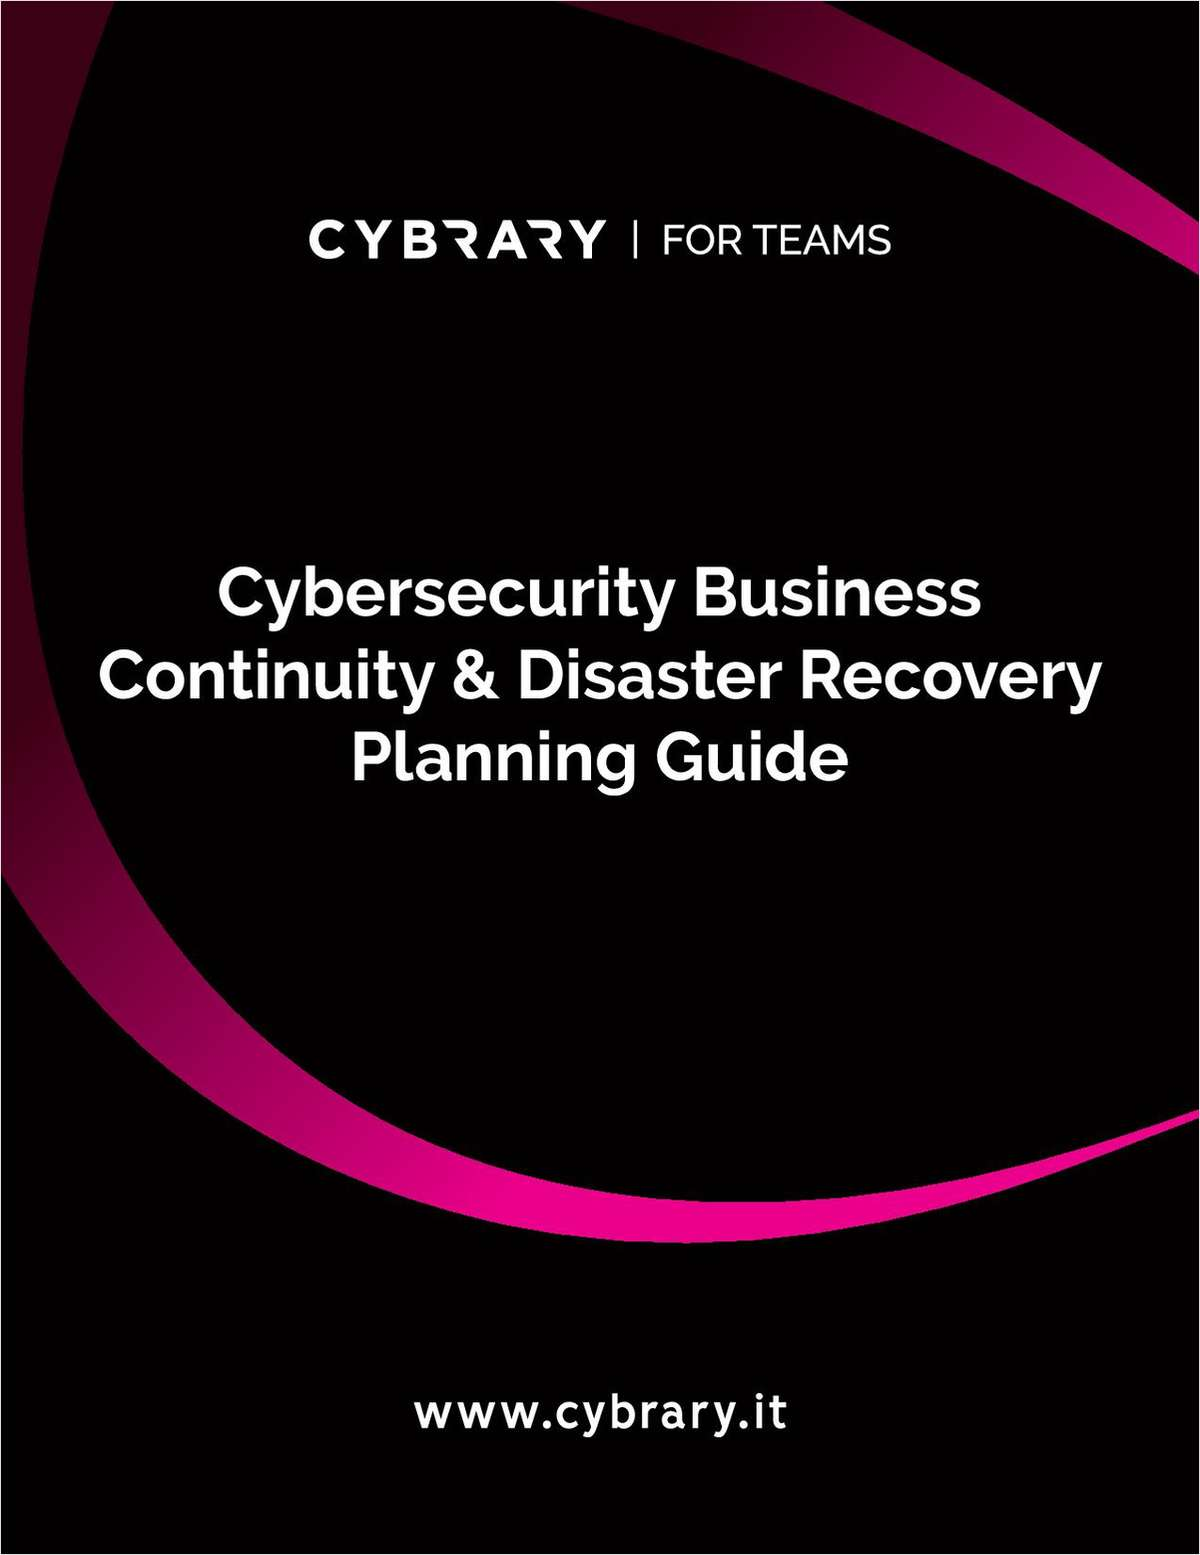 Cybersecurity Business Continuity & Disaster Recovery Planning Guide